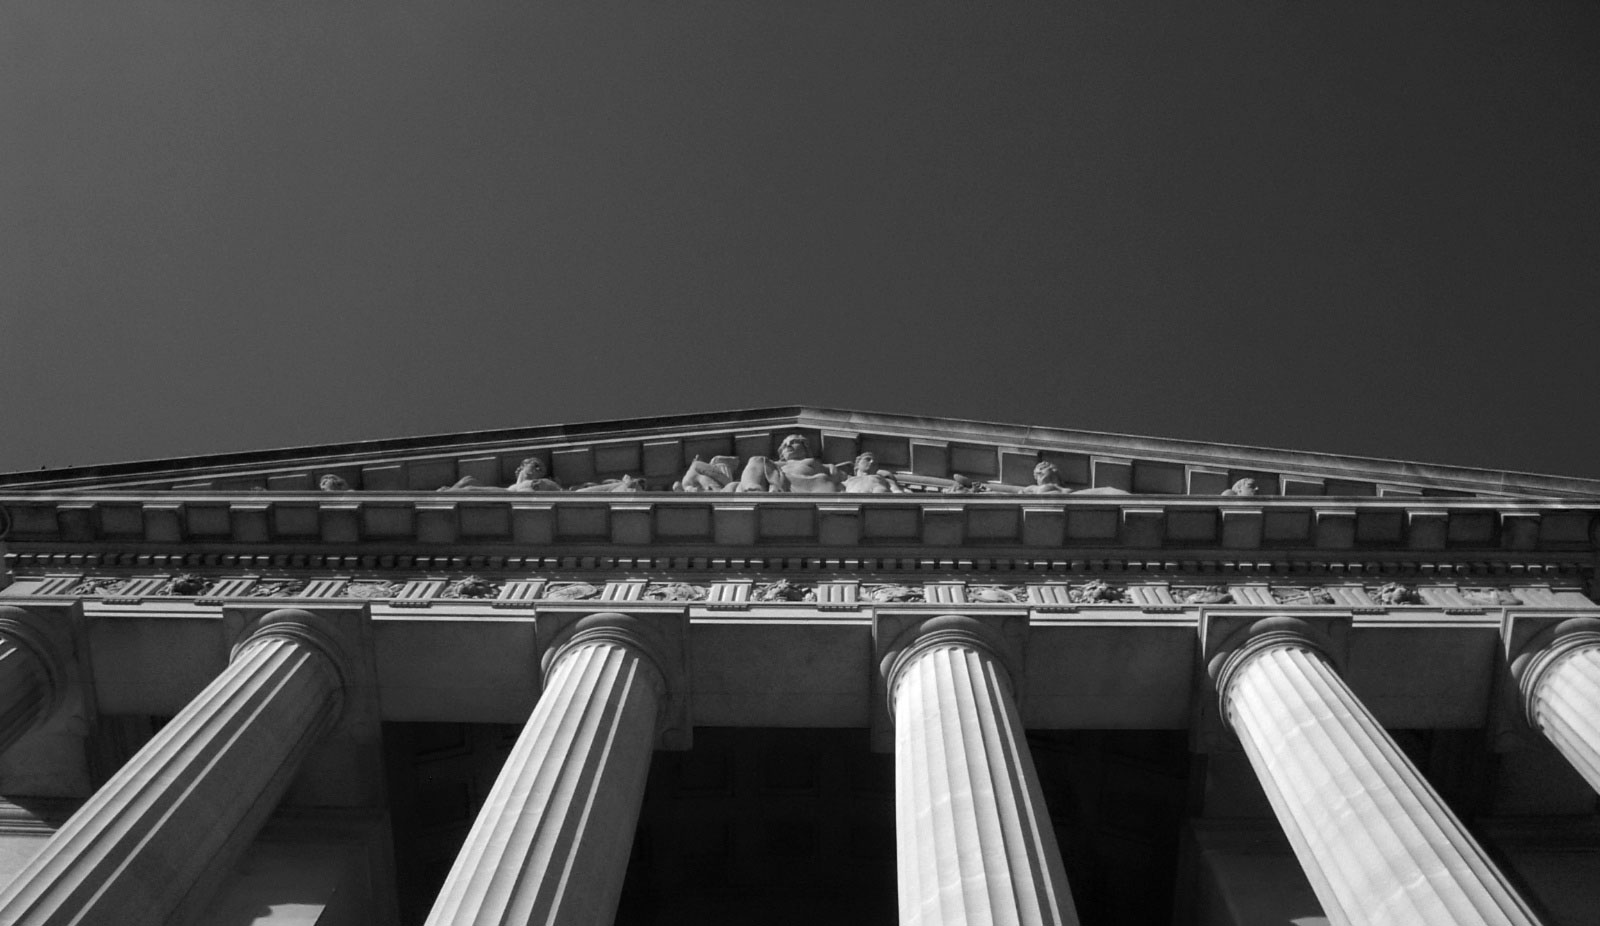 Black and White Courthouse Background Image